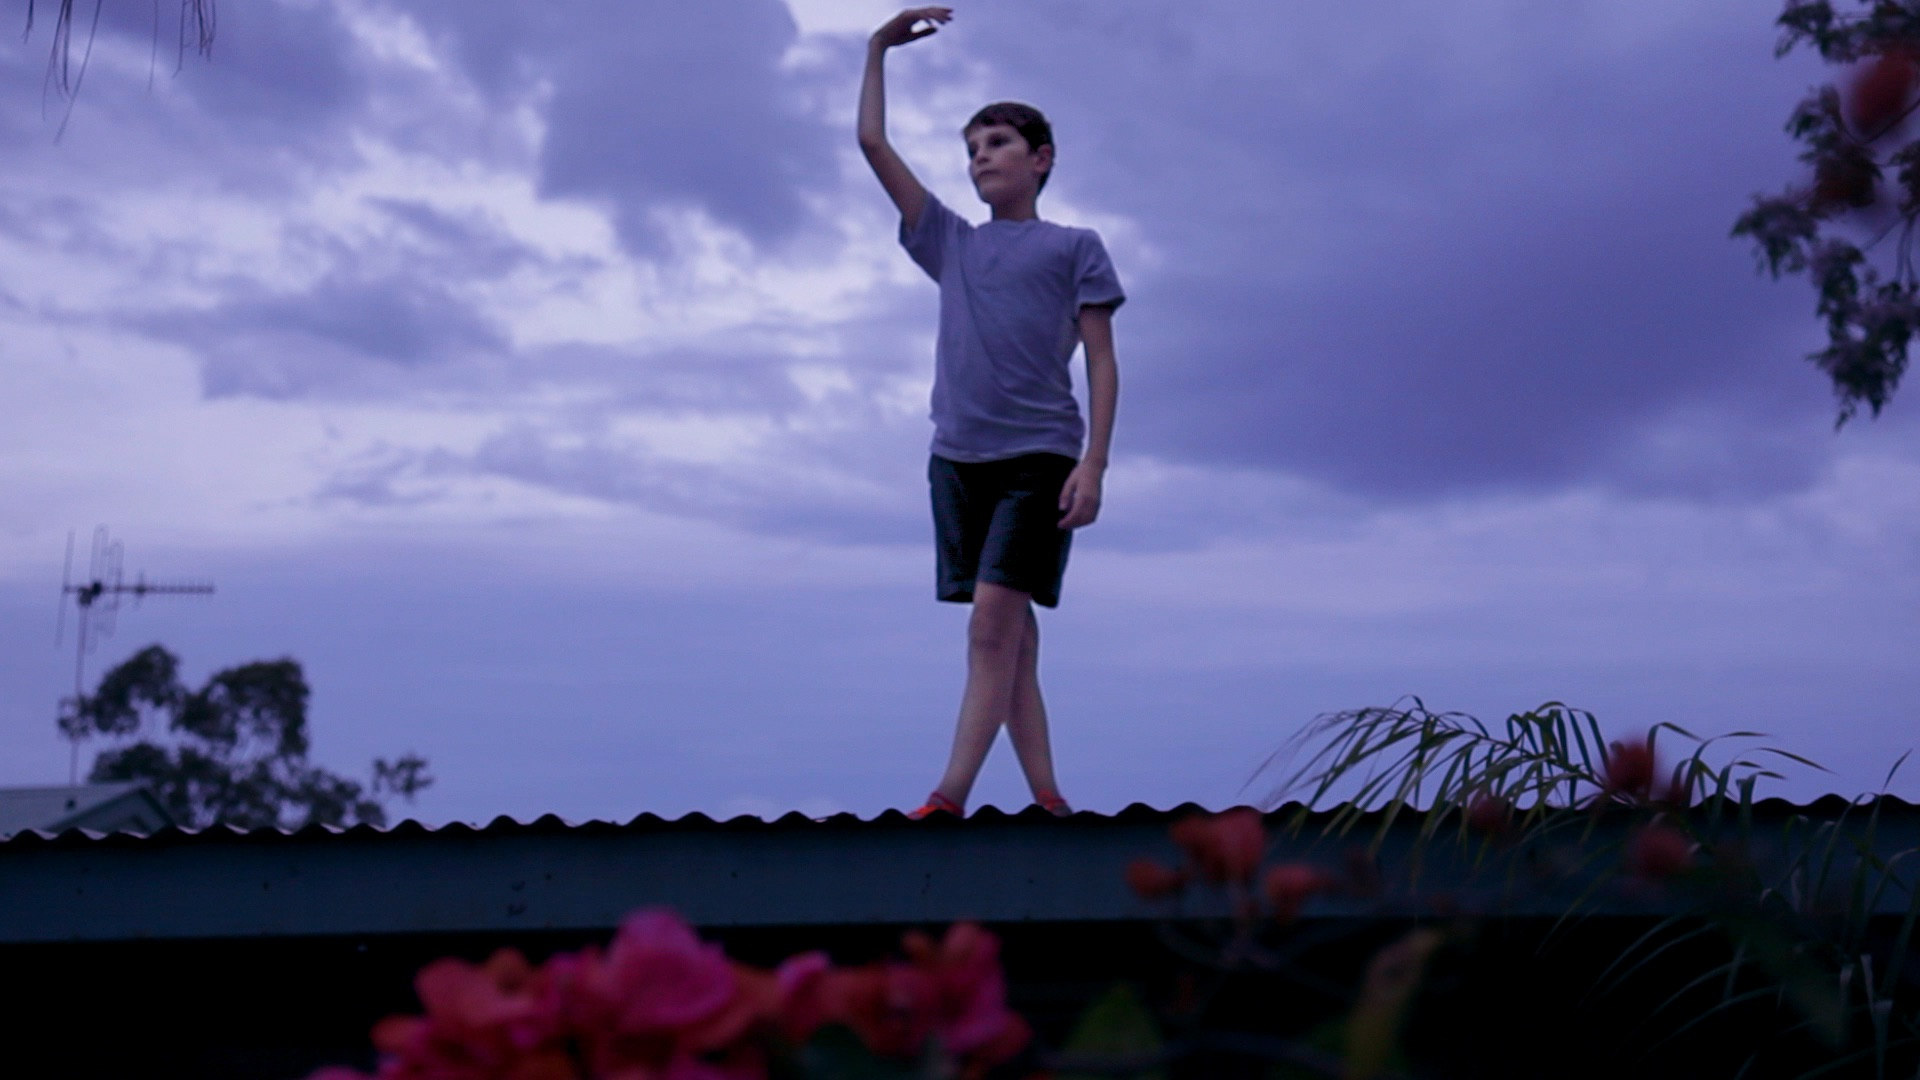 Mack on the roof